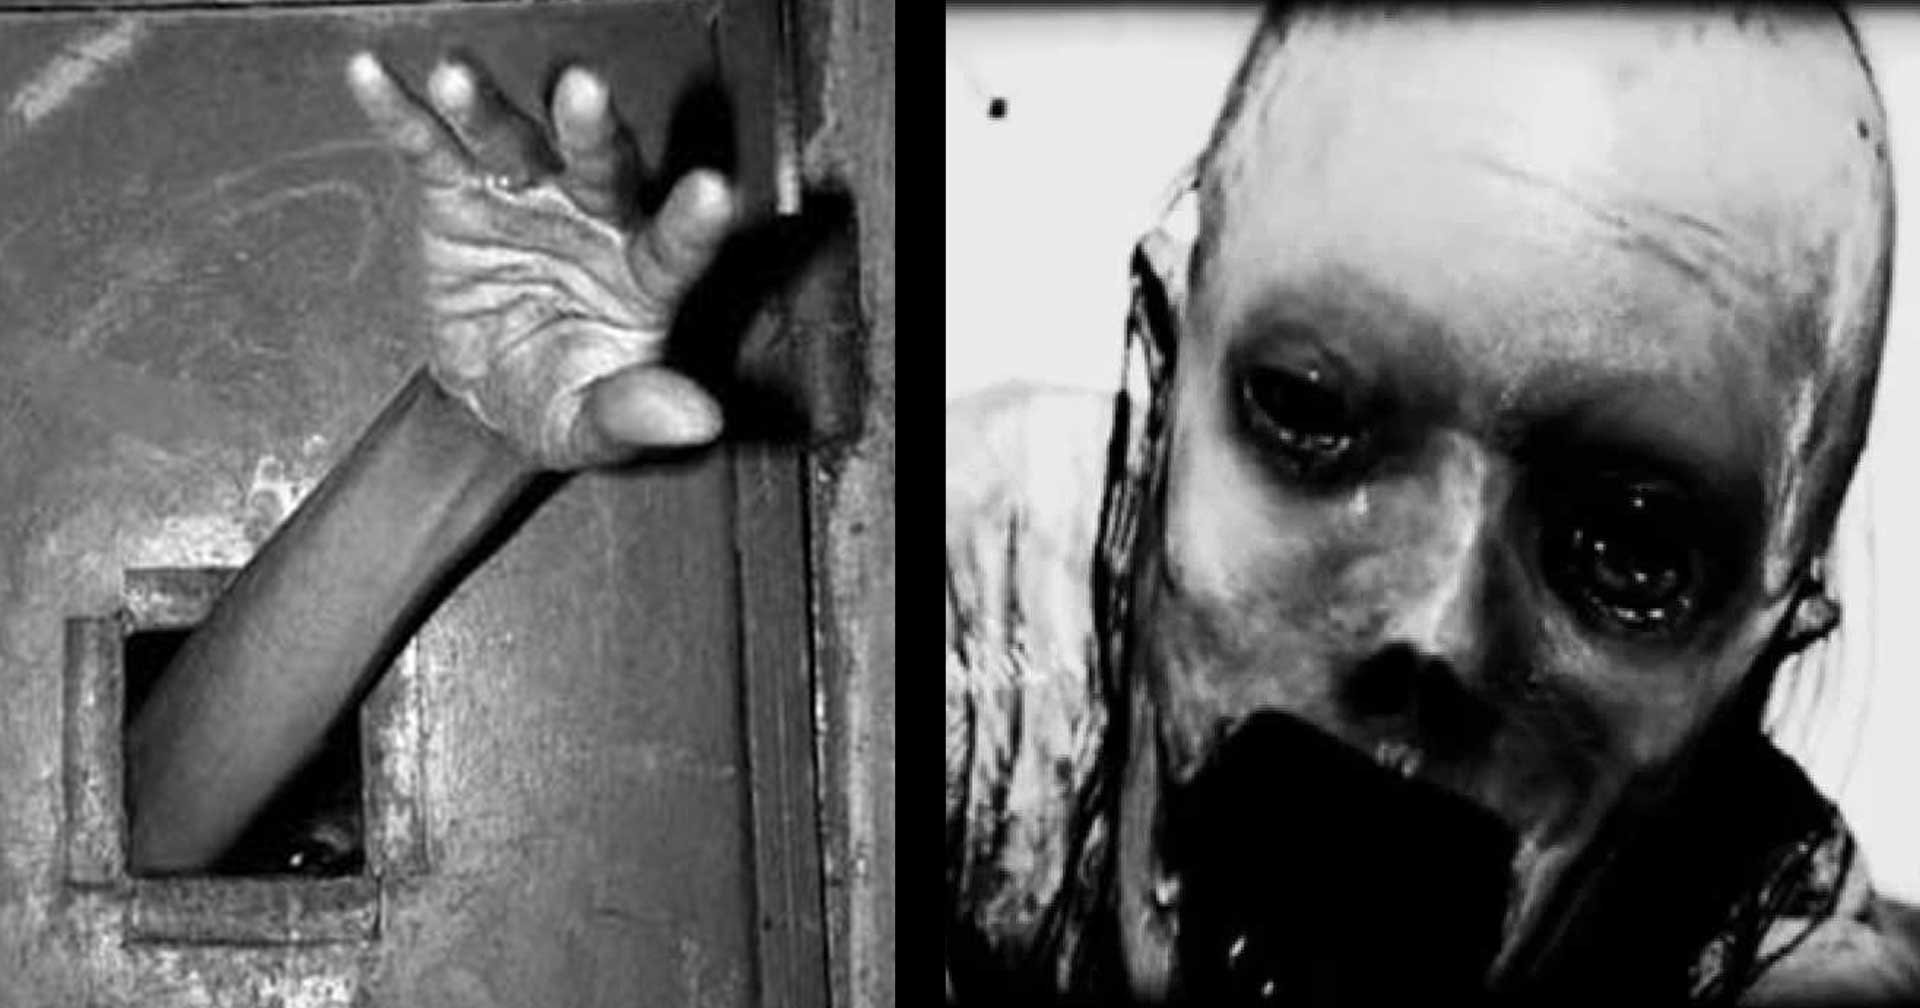 The cruel and creepy story of the Russian Sleep Experiment!